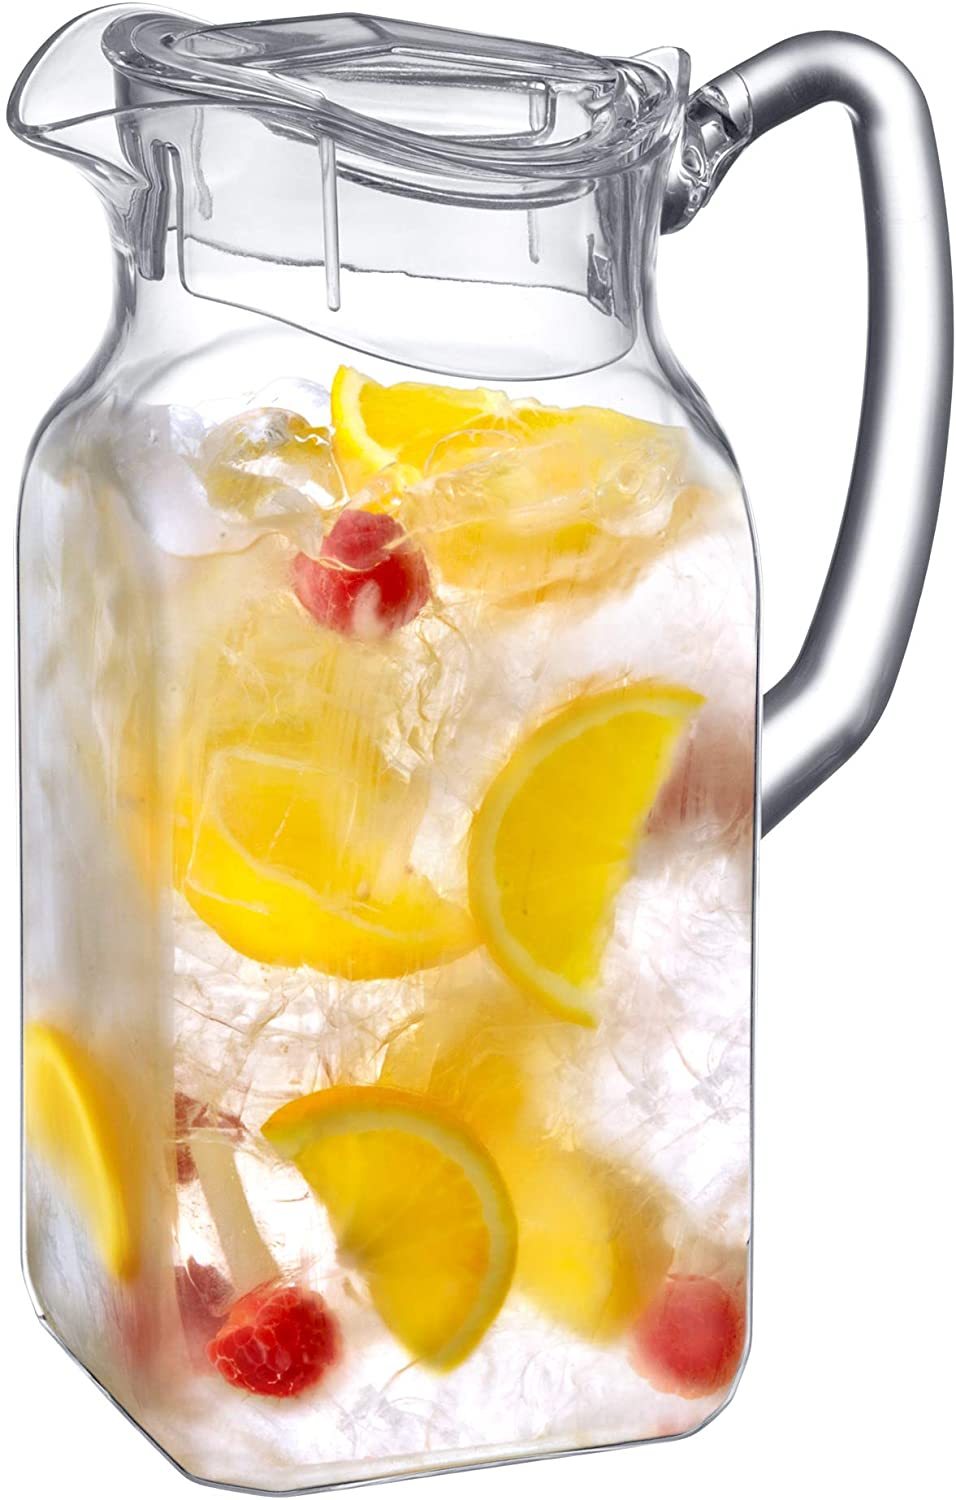 Amazing Abby Quadly - Acrylic Pitcher (72 oz), Clear Plastic Pitcher, BPA-Free and Shatter-Proof, Great for Iced Tea, Sangria, Lemonade, and More